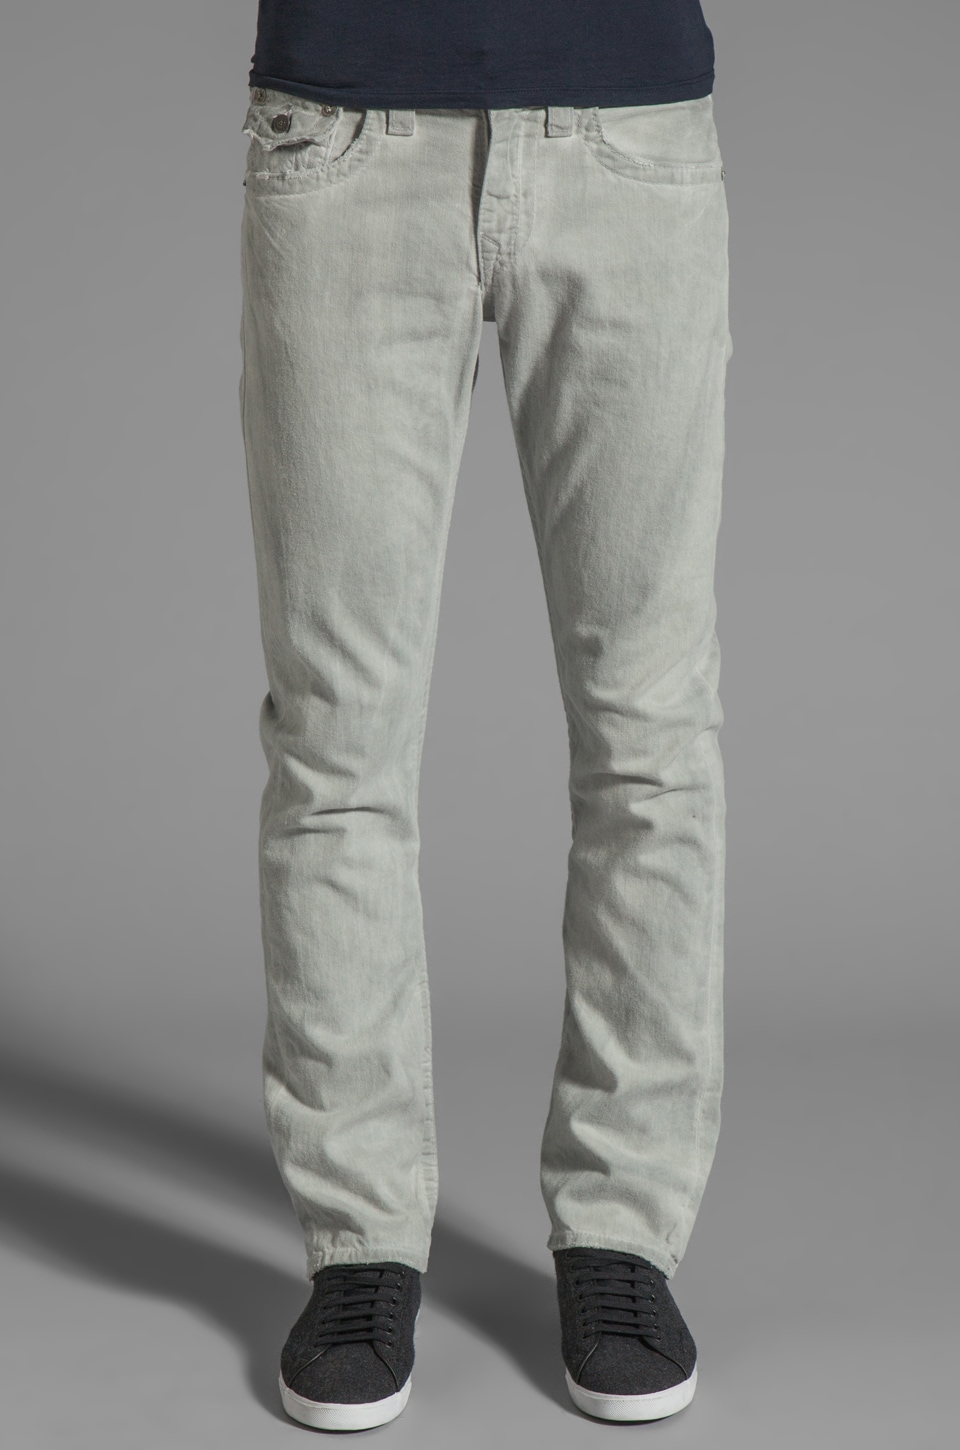 True Religion Ricky Oil Dye Straight Leg in Pebble Grey